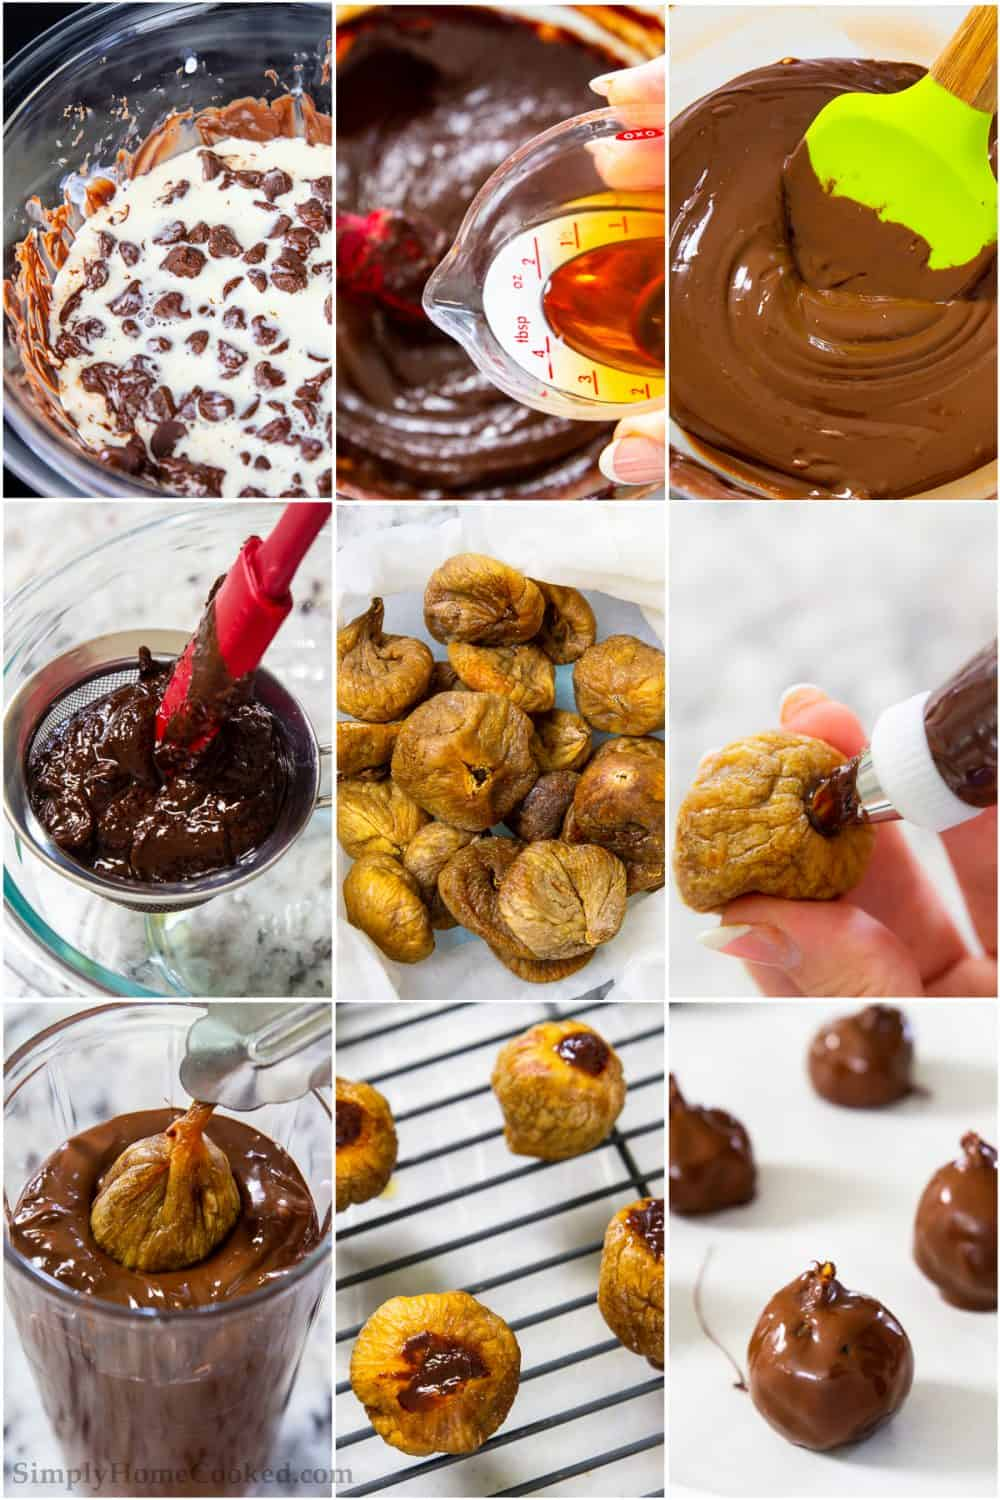 How to make fig bonbons step by step pictures